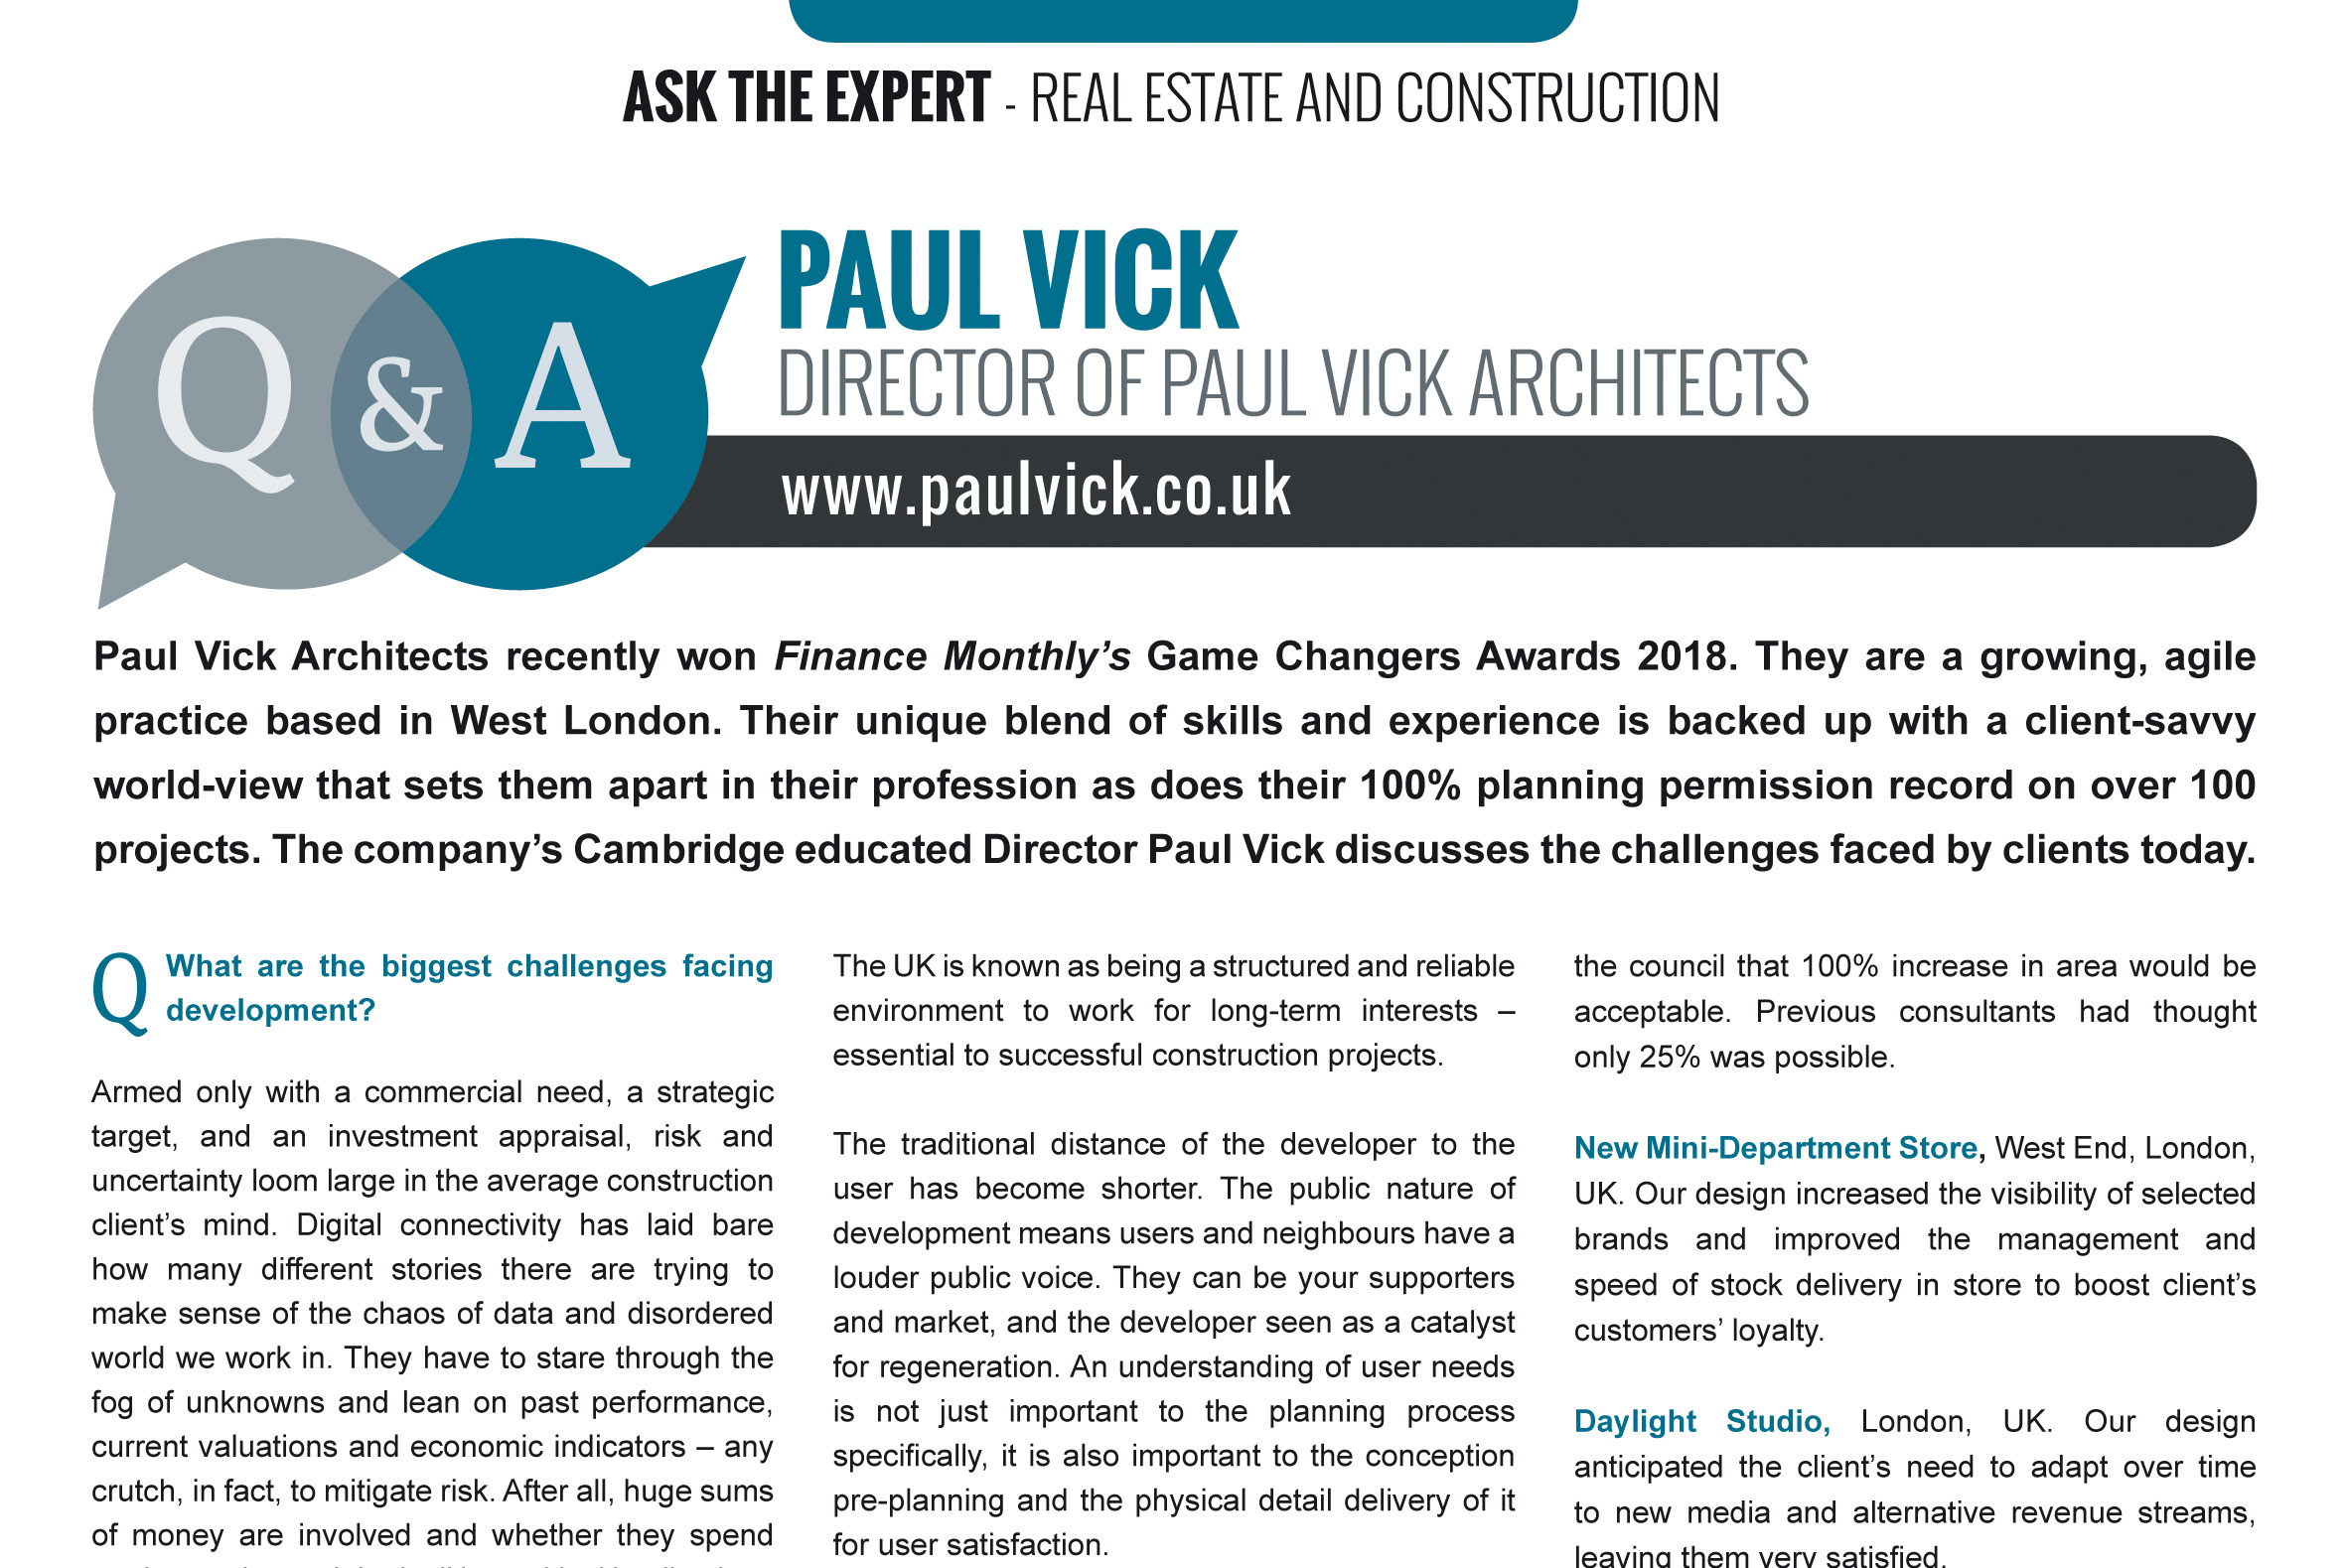 Paul Vick Architects